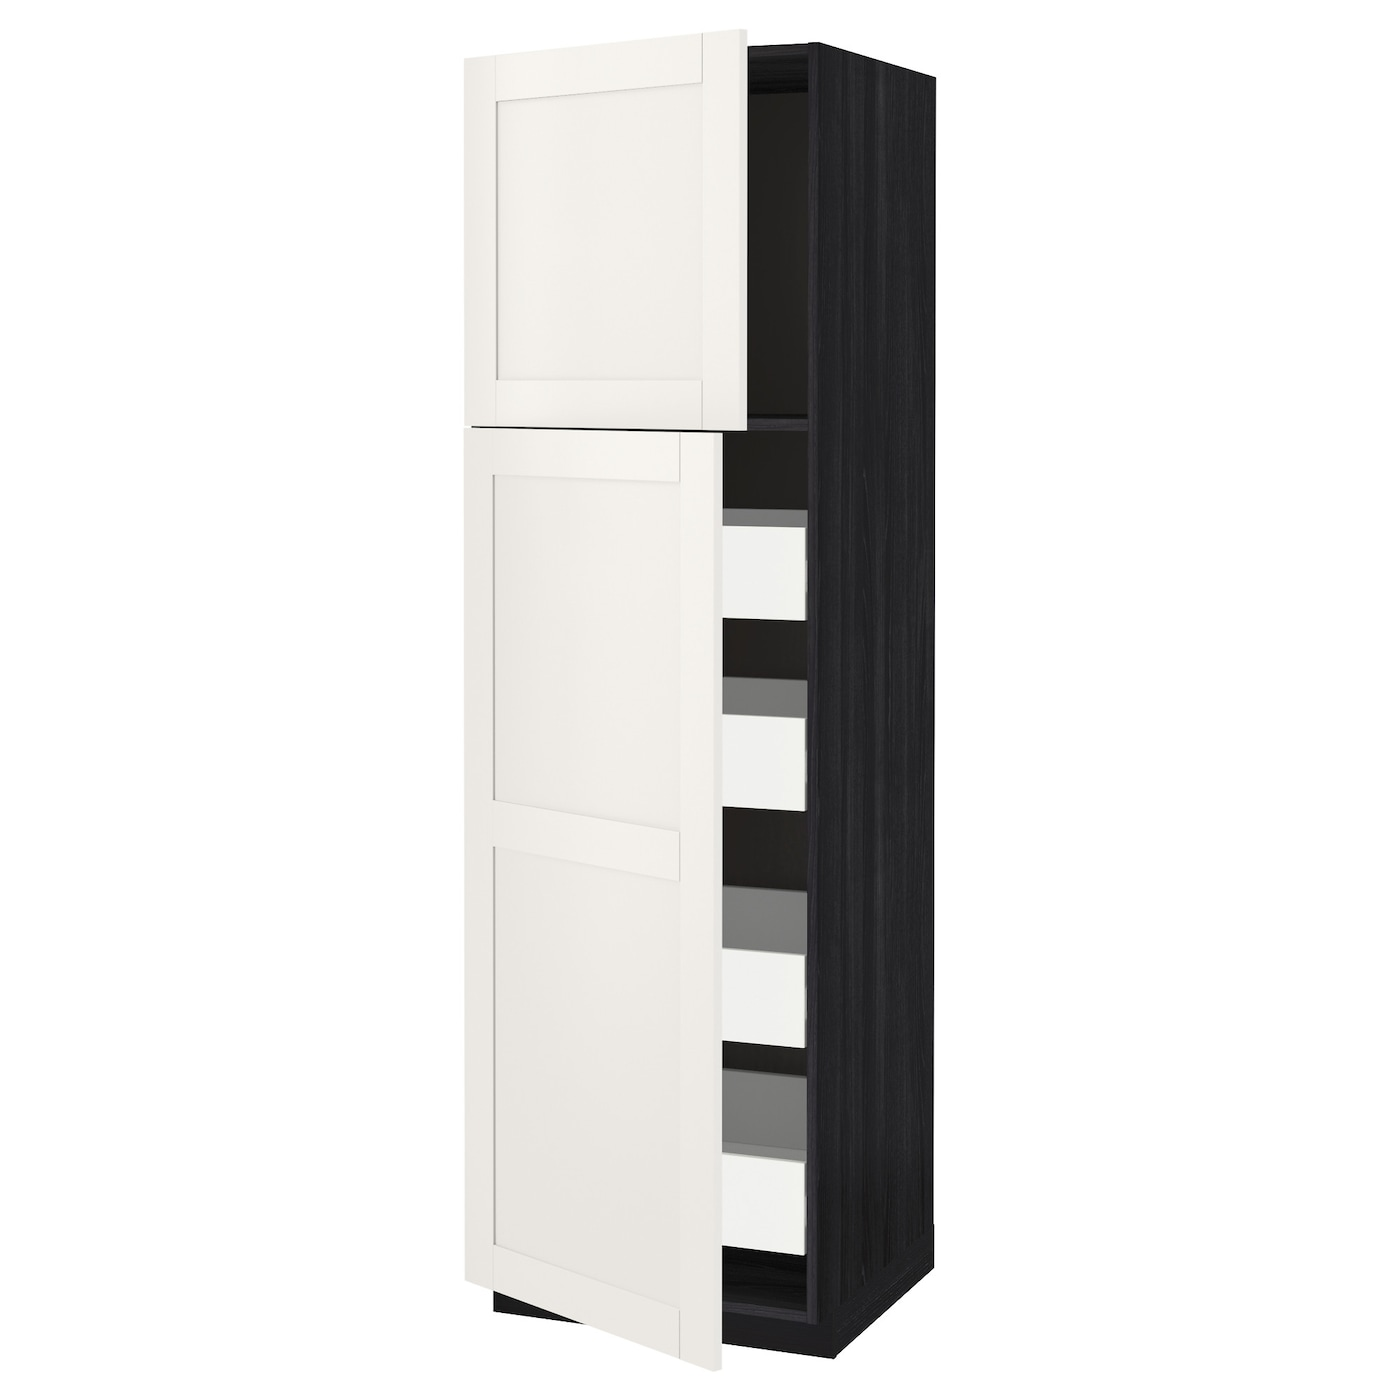 metod f rvara armoire 2 portes 4 tiroirs noir s vedal blanc 60x60x200 cm ikea. Black Bedroom Furniture Sets. Home Design Ideas